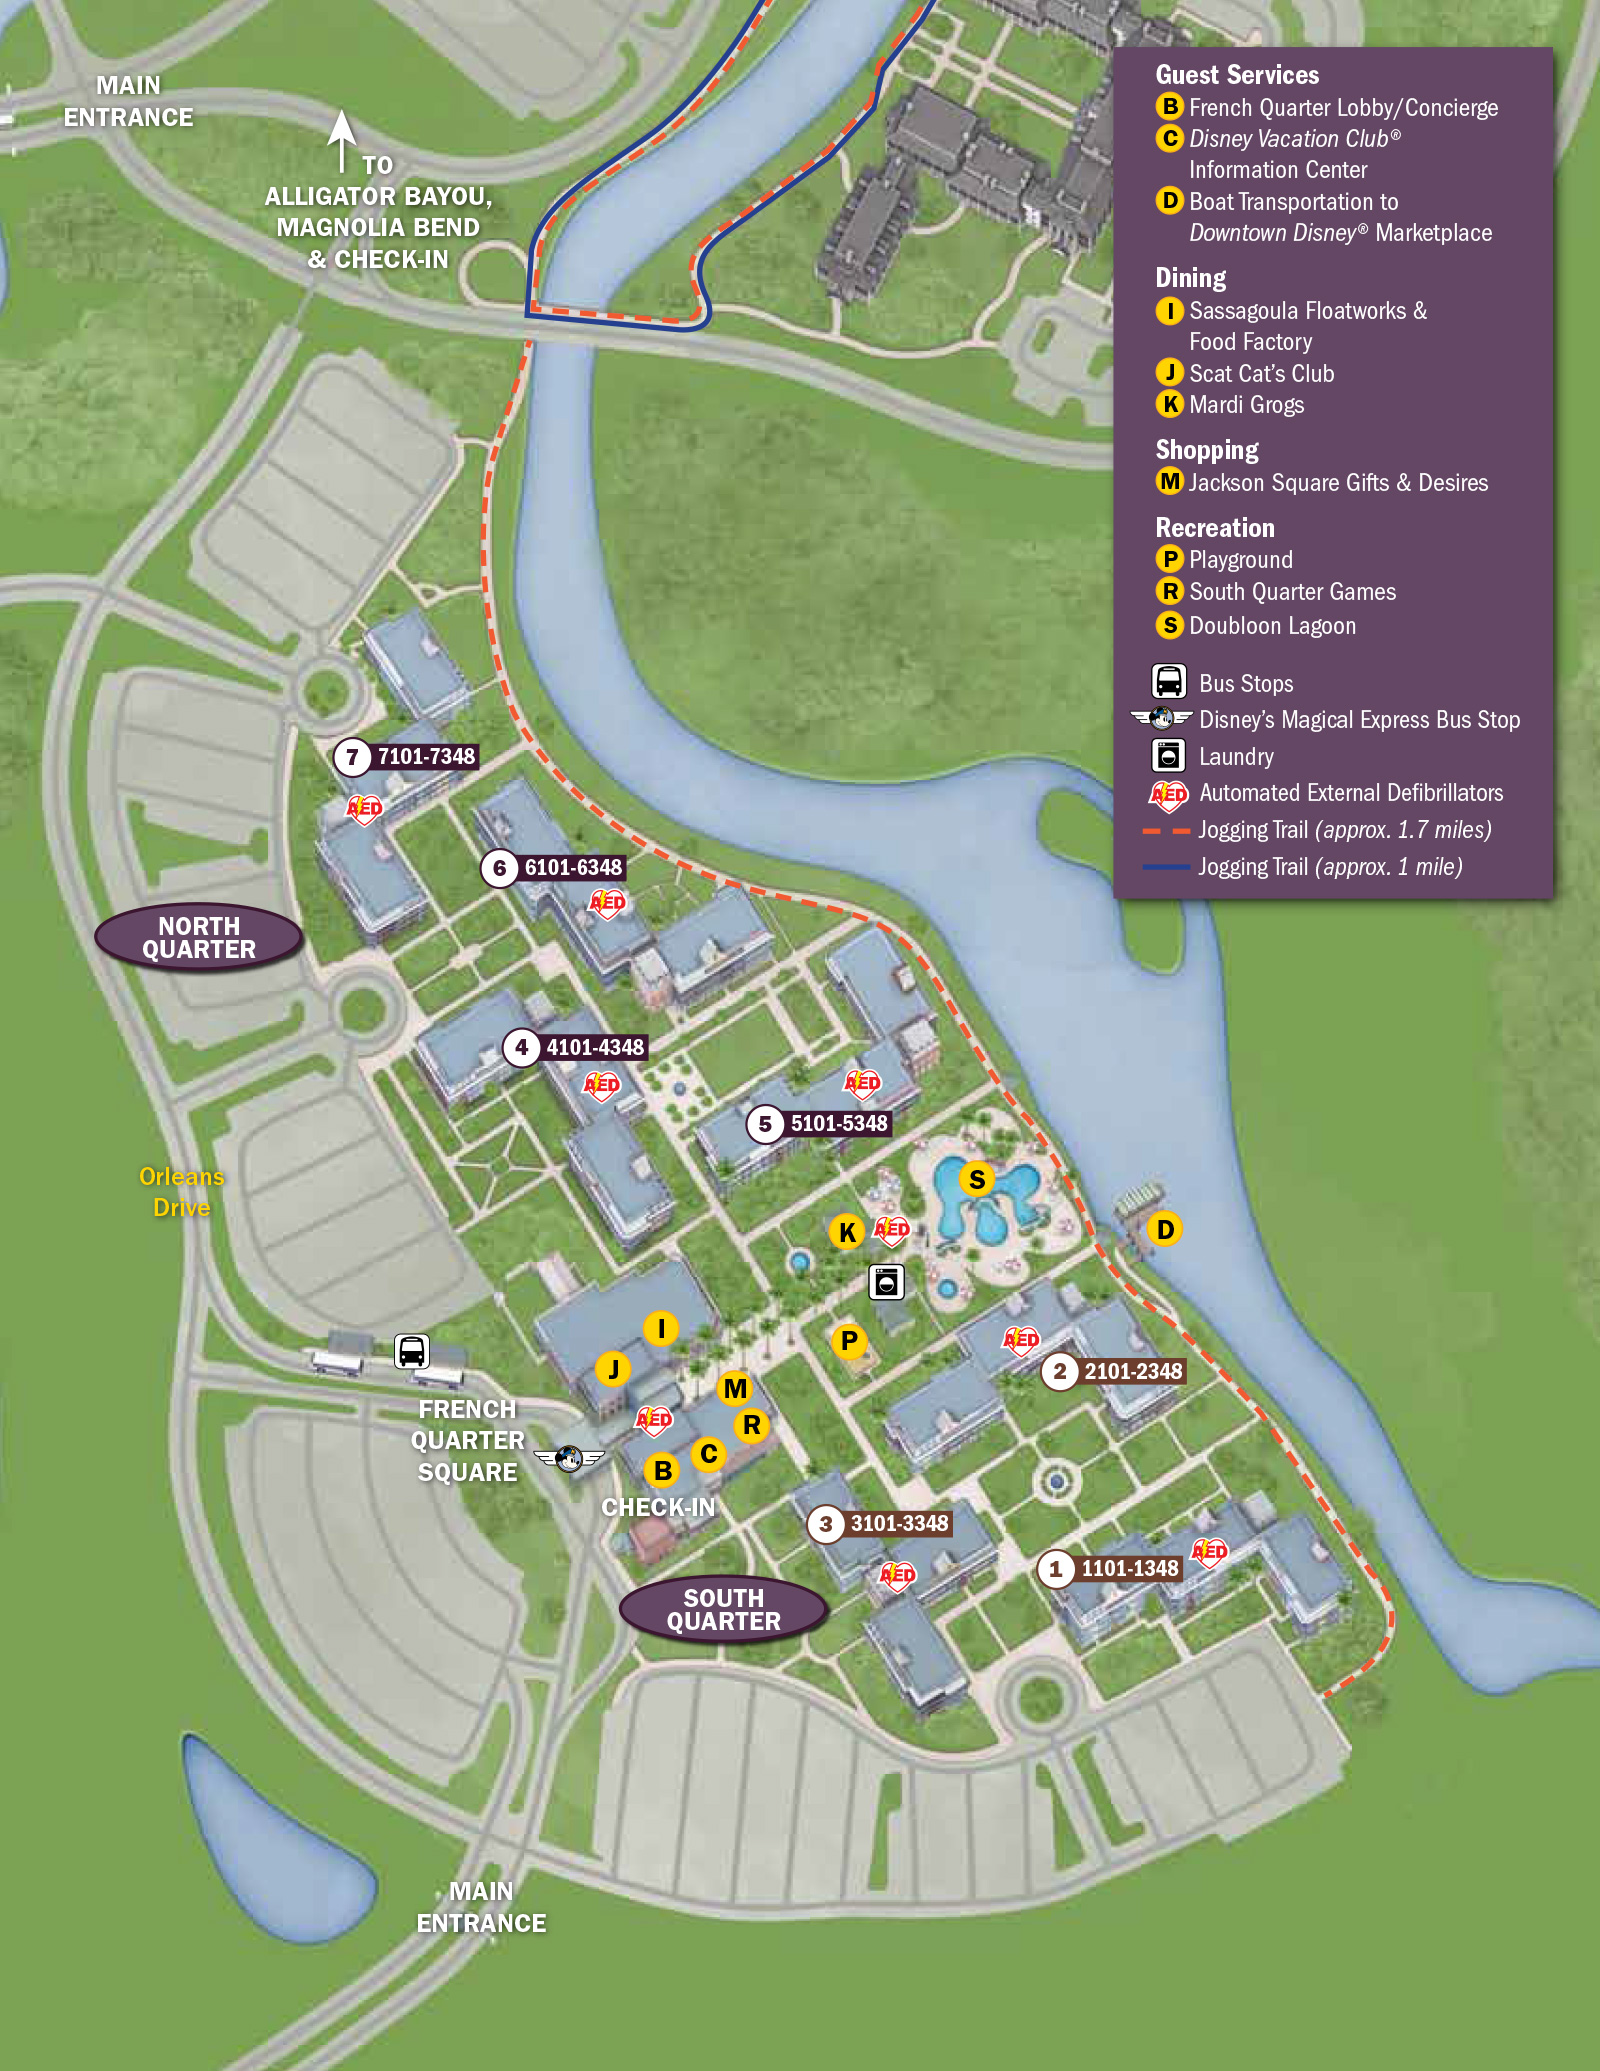 2013 Port Orleans French Quarter guide map Photo 1 of 2 – New Orleans French Quarter Tourist Map